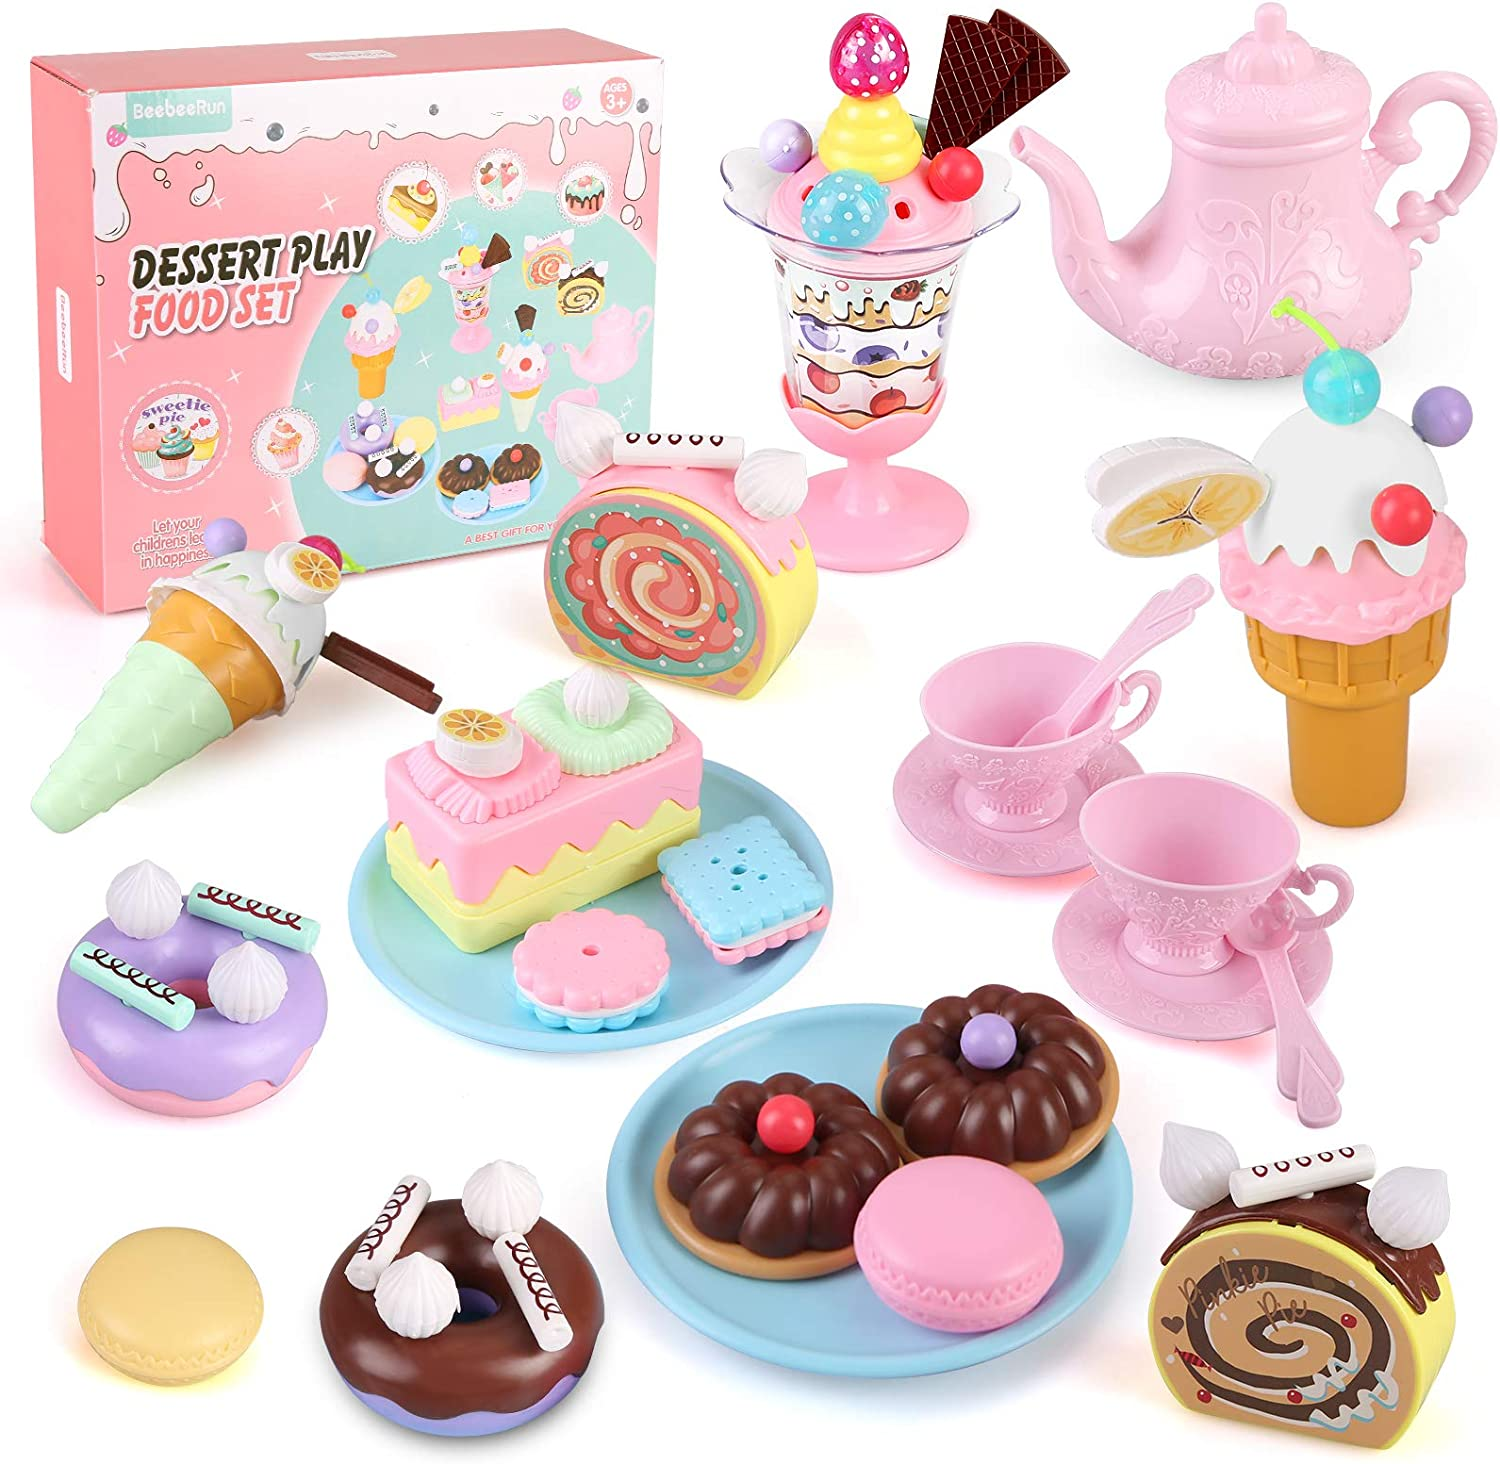 Toys Tea Set for Kids, 62PCS Pretend Play Food Toy Set, Princess Tea Time Toy Set, Kids Tea Party Set with Teapots, Teacups, Ice Cream, Biscuits and Desserts, Kitchen Toy for Toddlers,Boys Girls